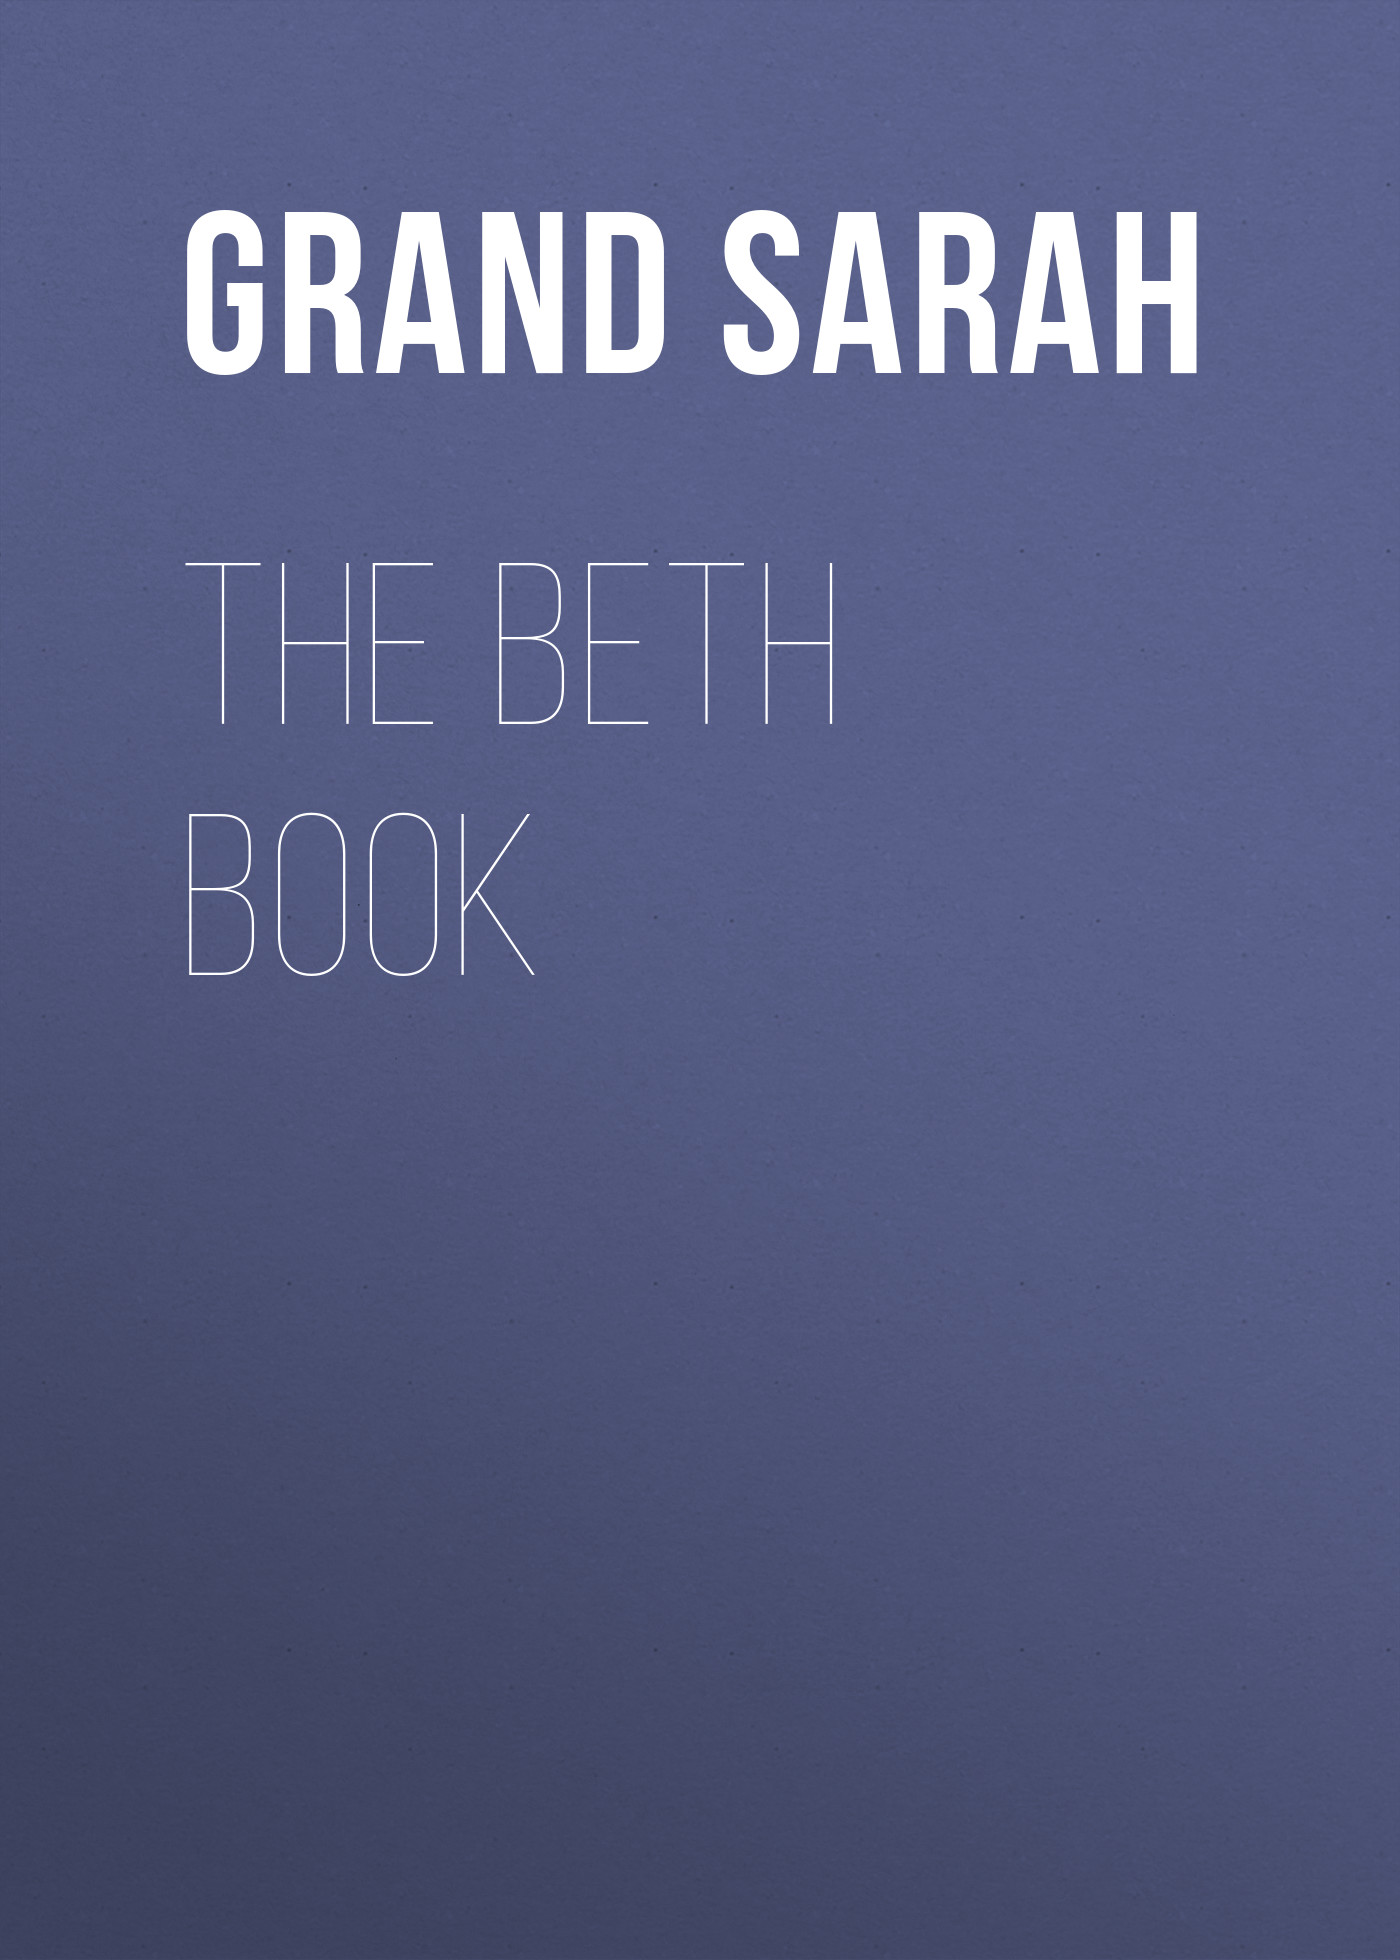 Grand Sarah The Beth Book цена